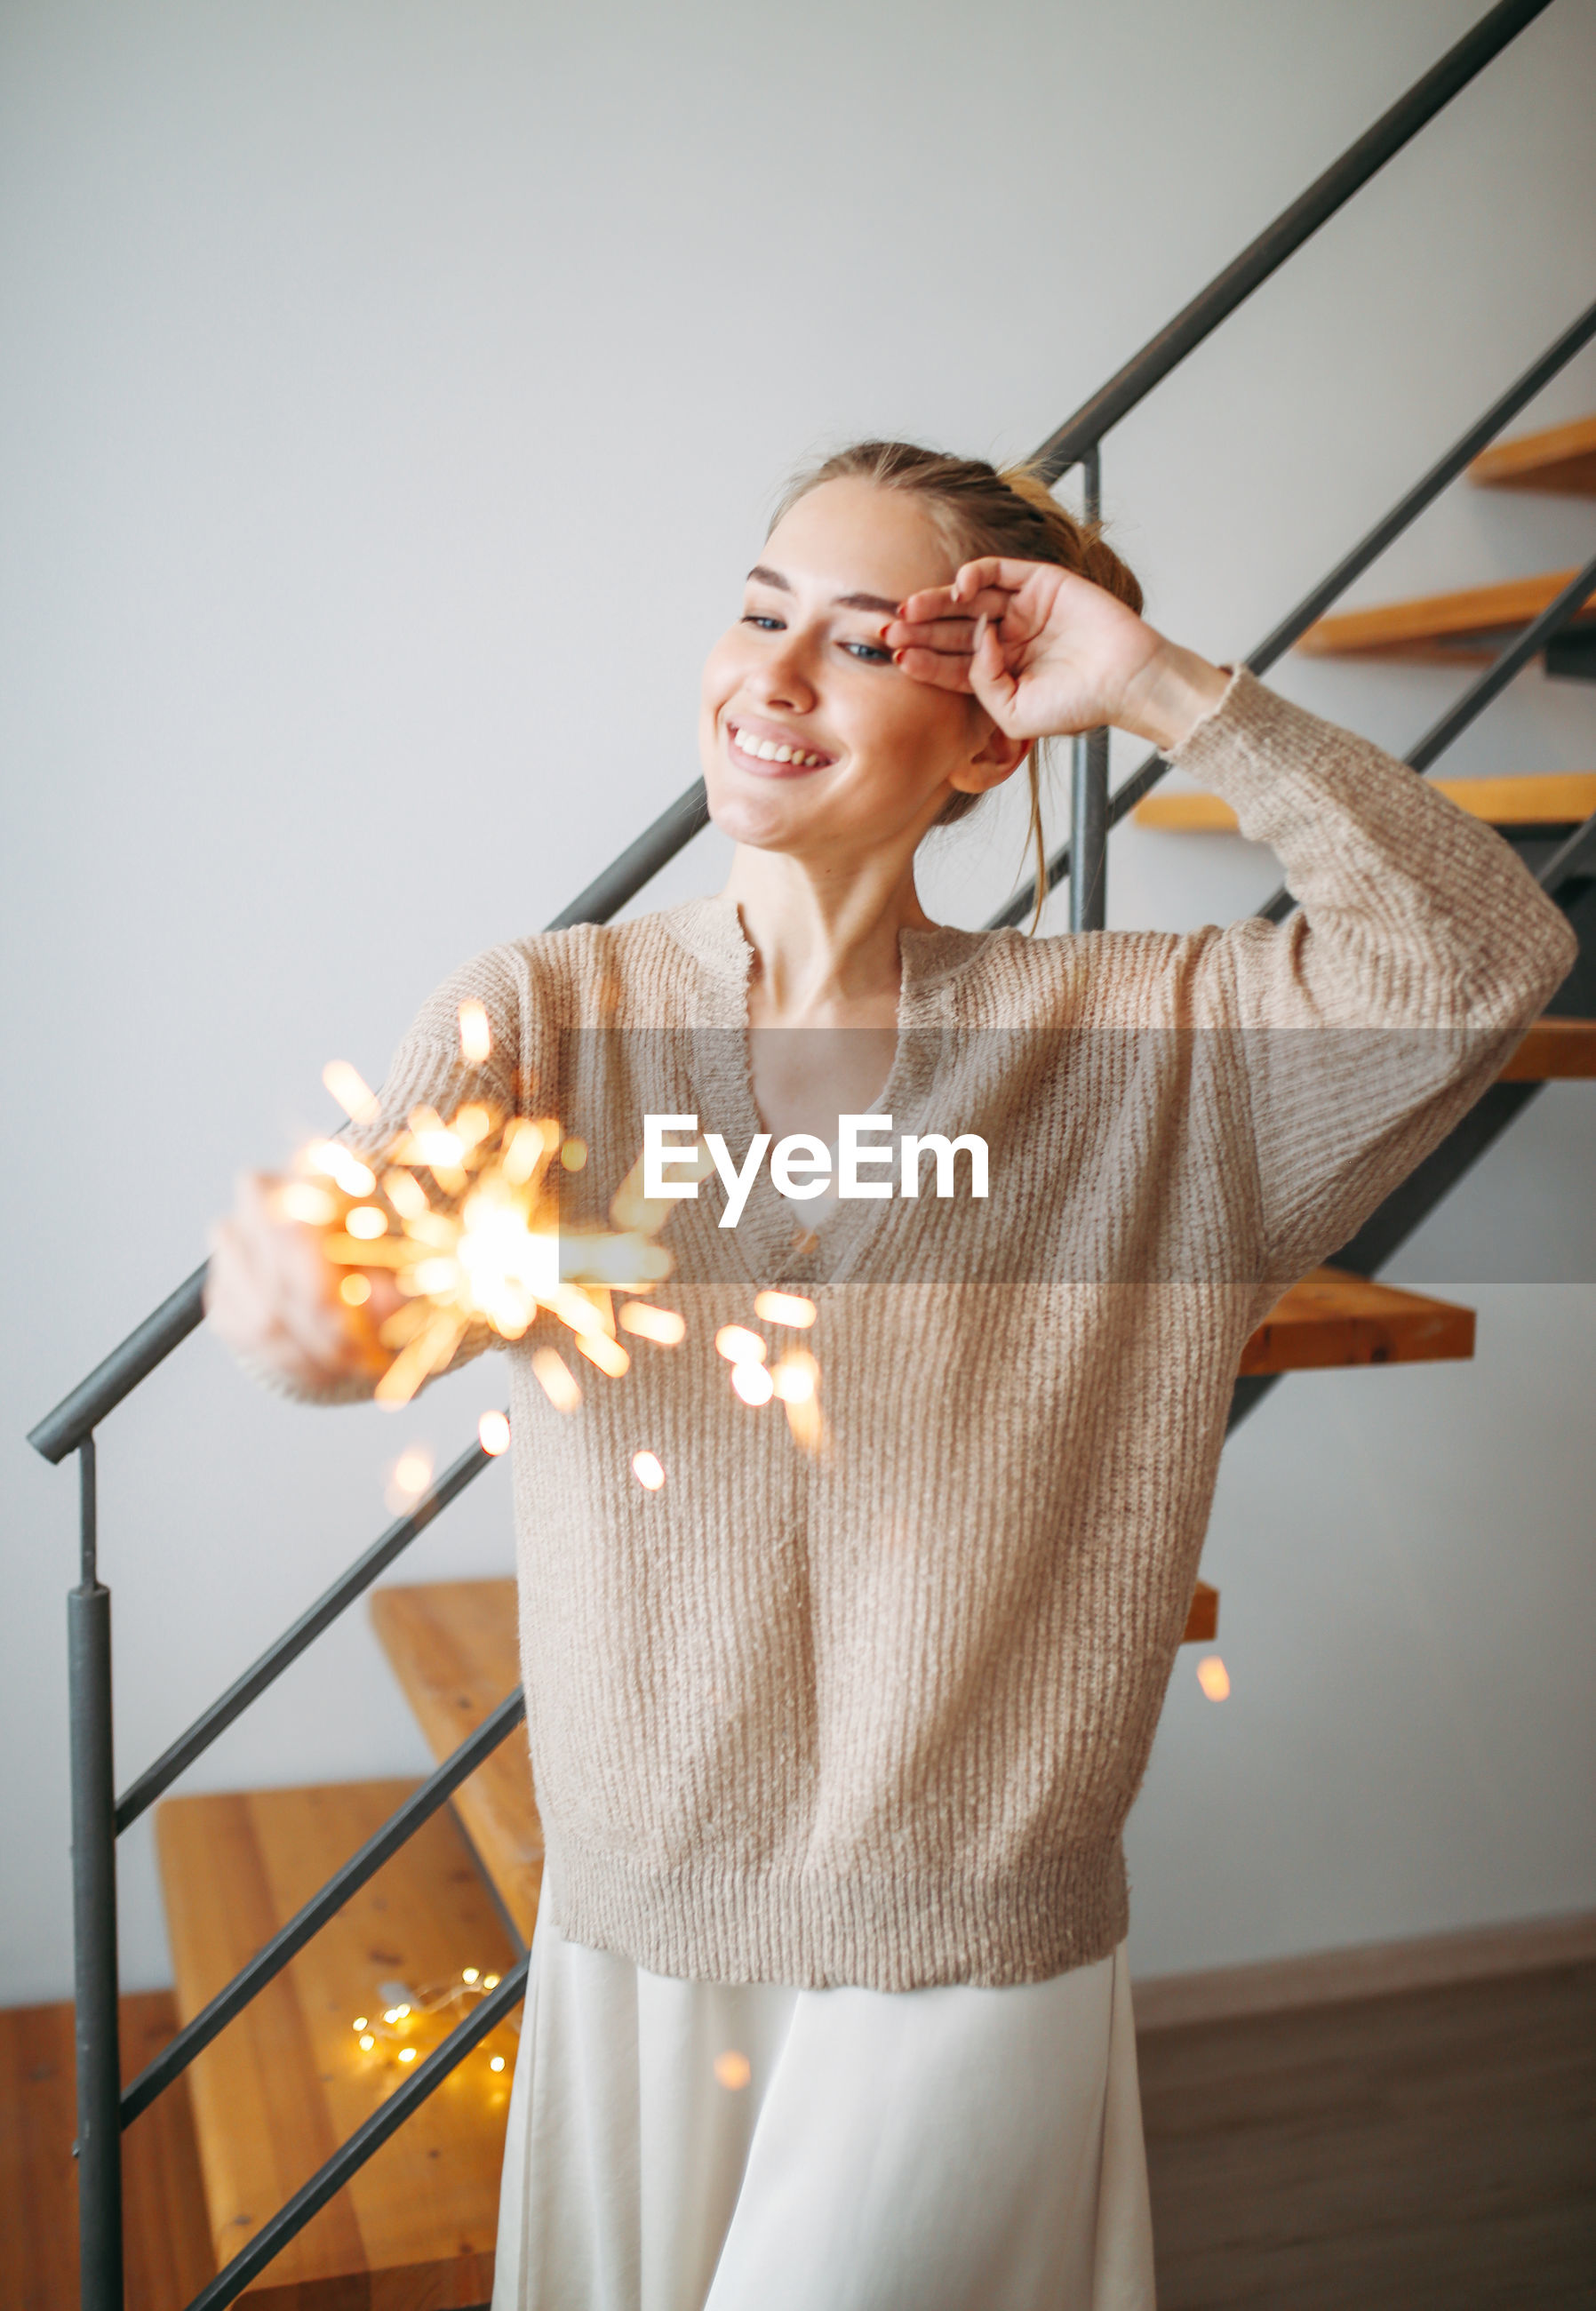 Smiling young woman holding sparkler at home